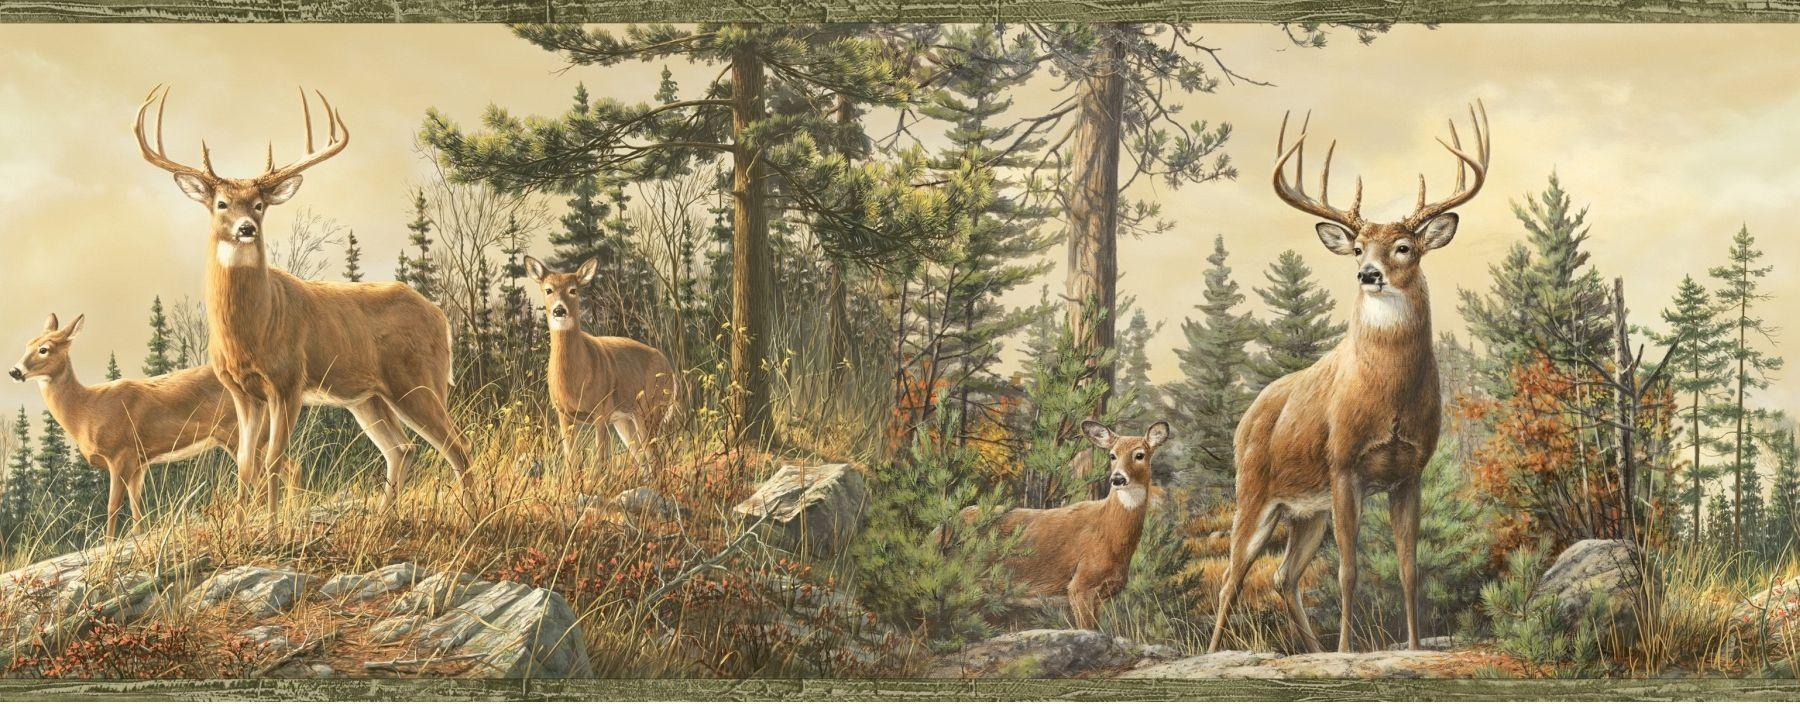 Whitetail Crest Deer Wallpapers Border